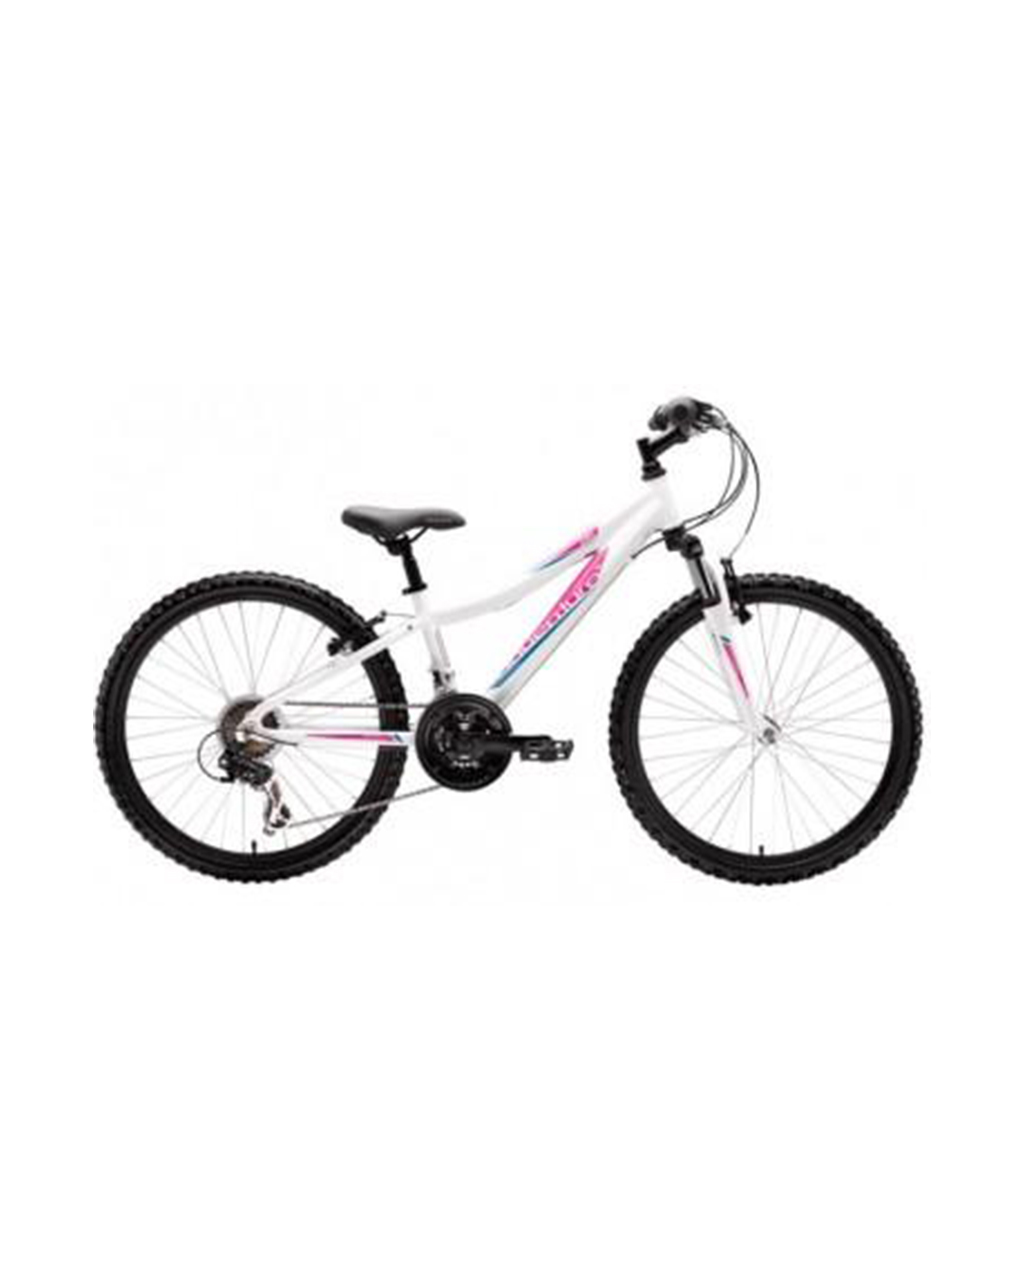 "Saracen ADVENTURE 2015 24"" Girls - White/Pink"